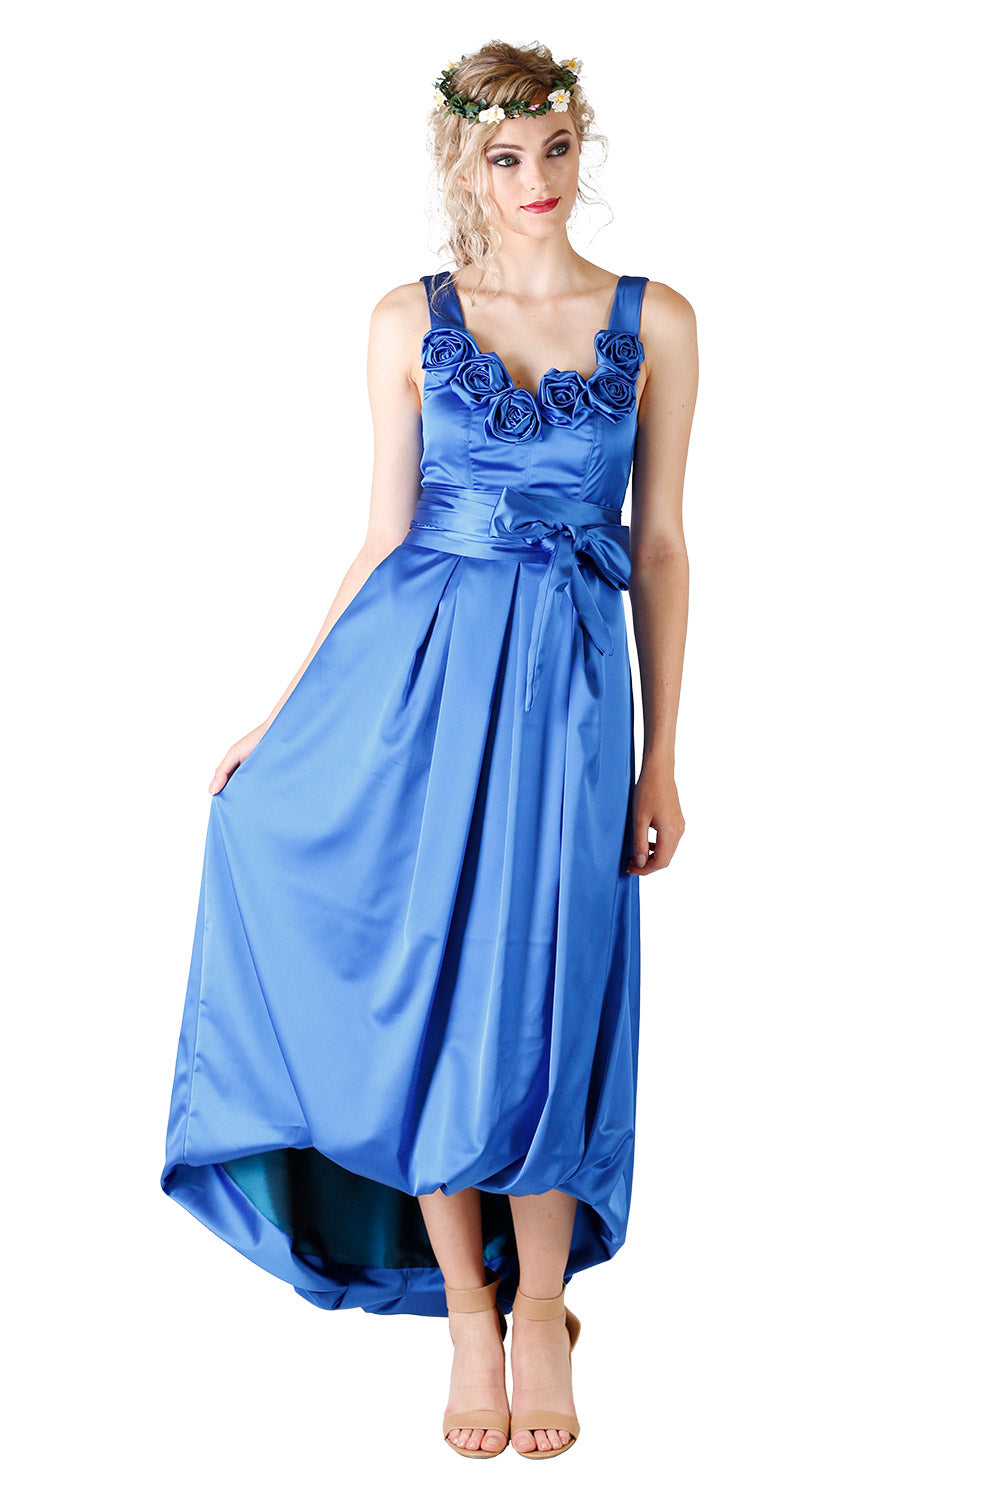 Blue / Bridesmaid Dresses NZ / Bridal Party NZ / Annah Stretton NZ / Designer NZ /